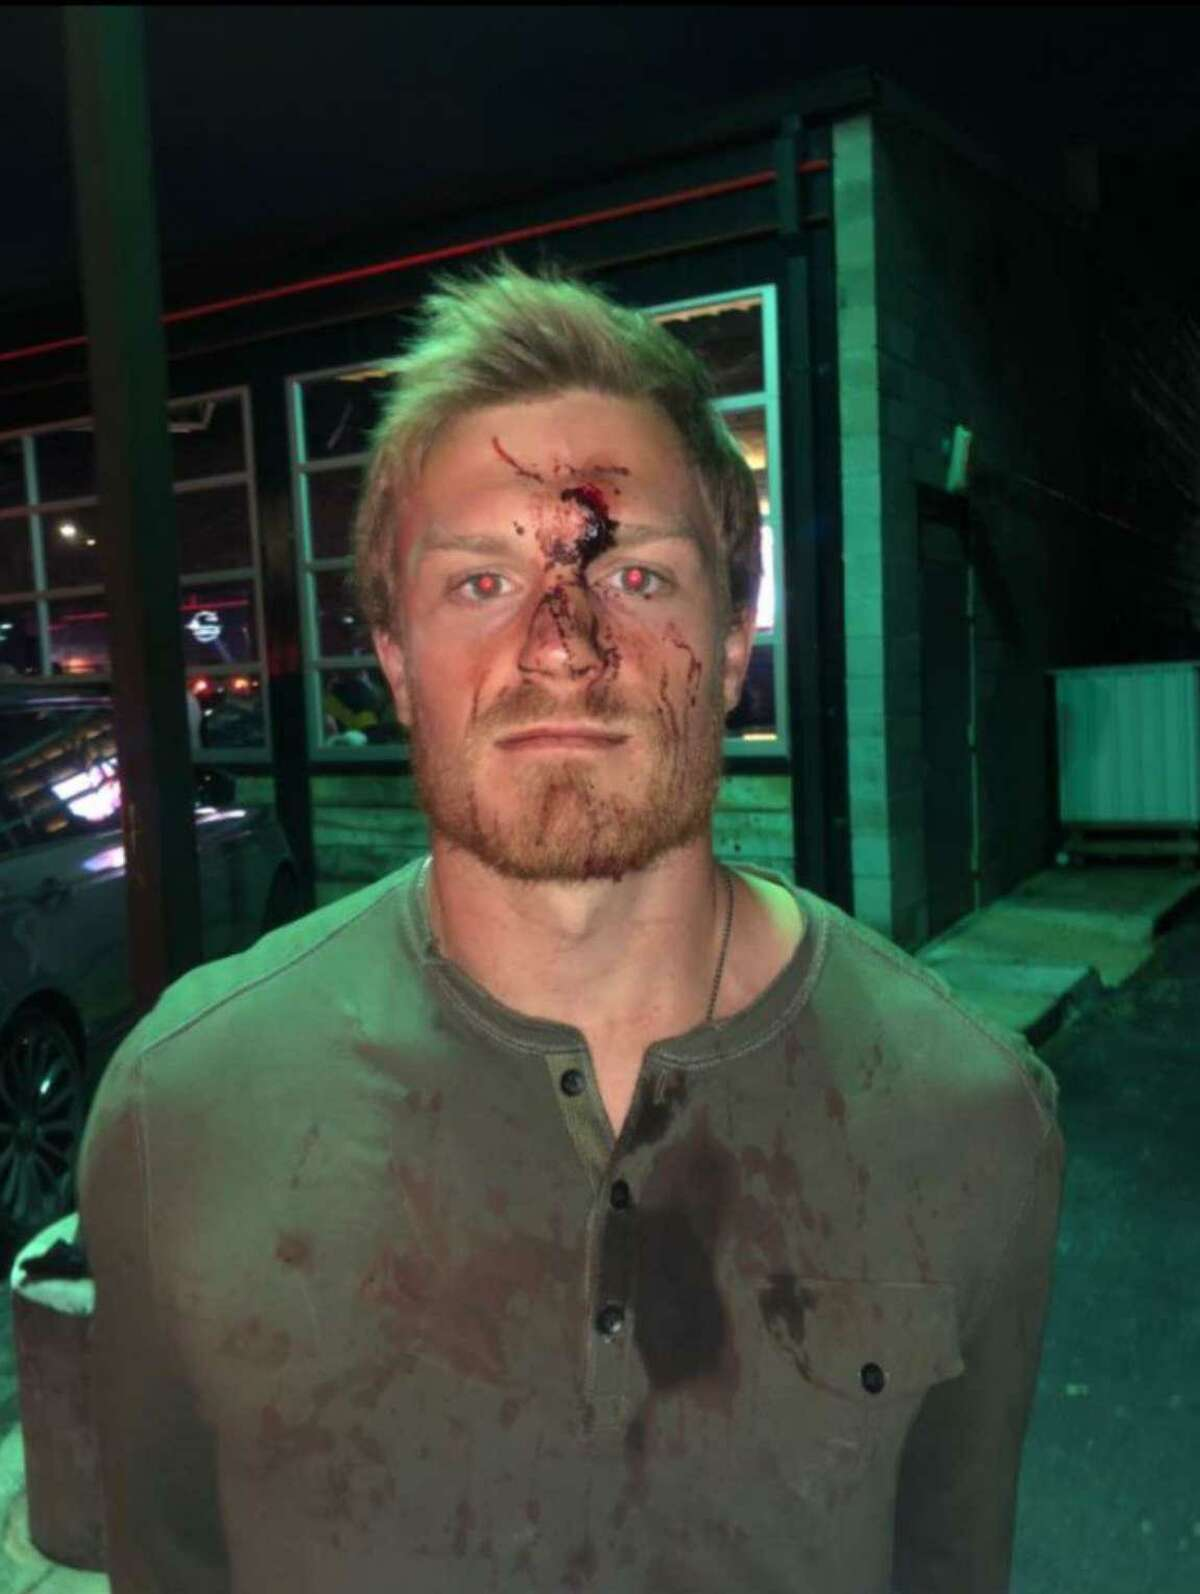 Conner Capel, 21, shows his injuries after an incident with a bouncer at Houston's Concrete Cowboy Bar. Also injured was 24-year-old Kacy Clemens, the son of former Houston Astros pitcher Roger Clemens, on Jan. 1, 2019.